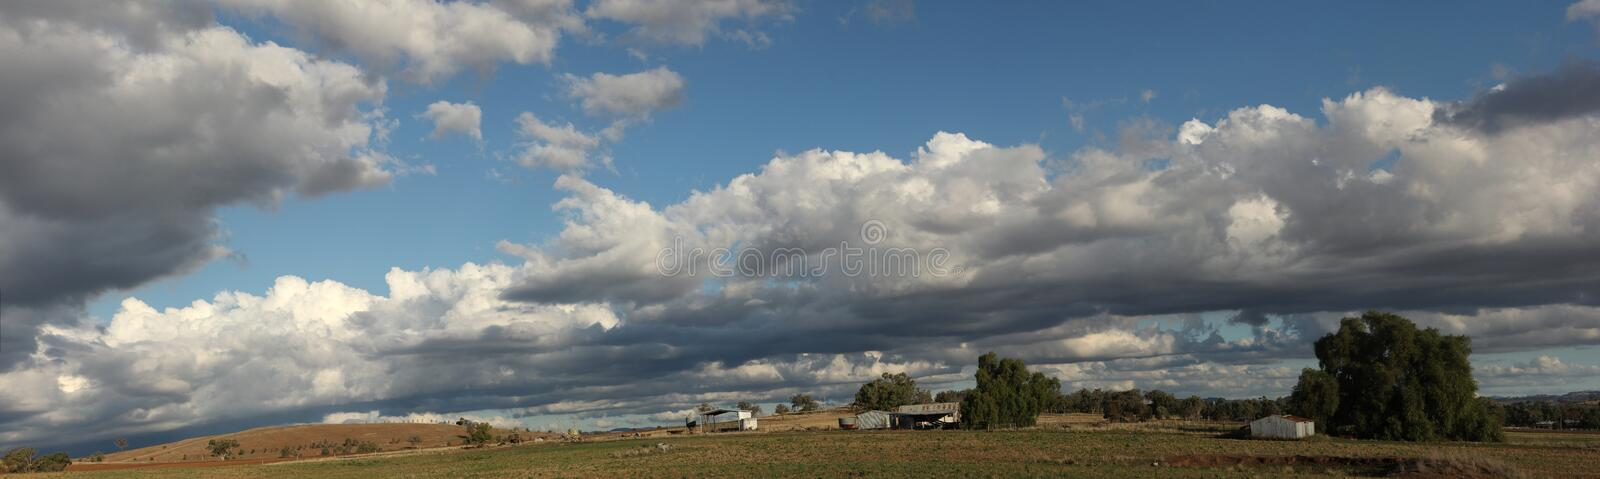 Panoramic view of large open dry drought affected farm fields under stretching cloud filled blue skies with farm buildings in. Rural New South Wales, Australia royalty free stock photo